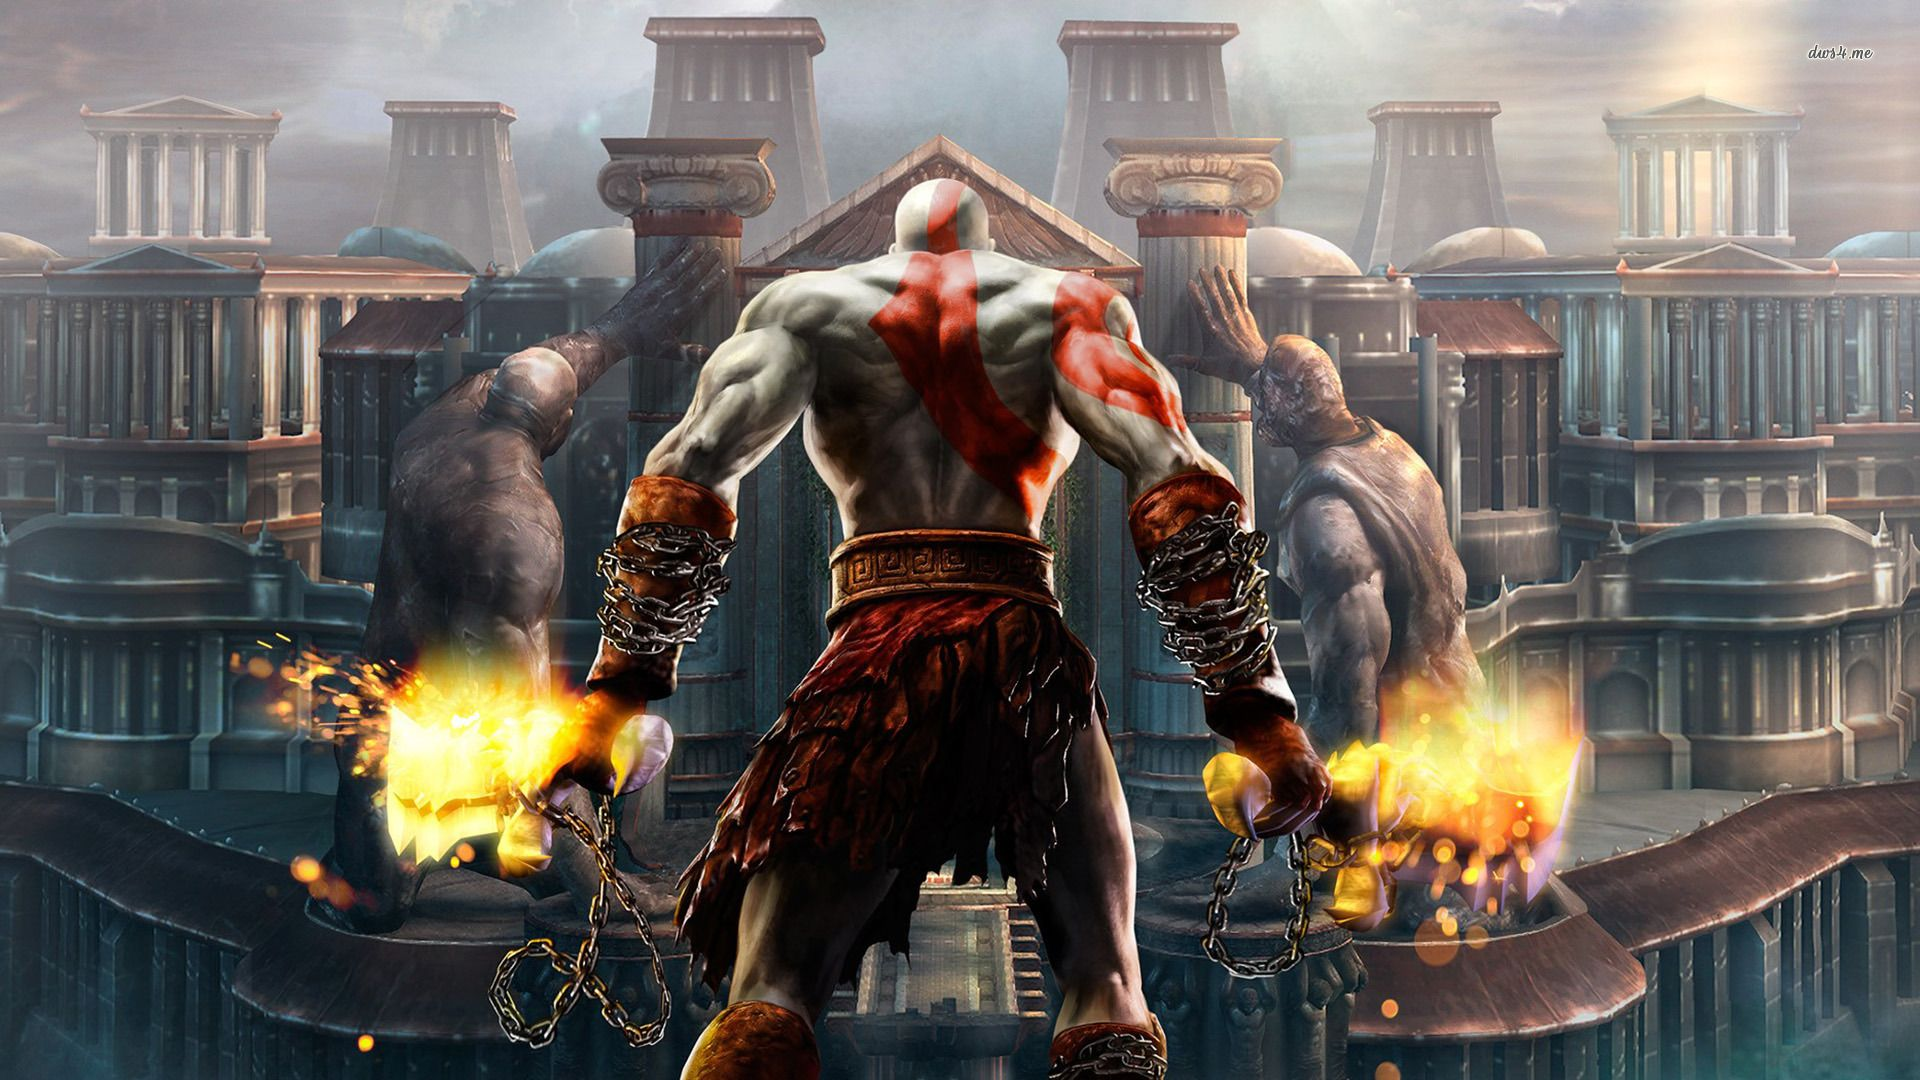 God Of War Wallpapers Top Free God Of War Backgrounds